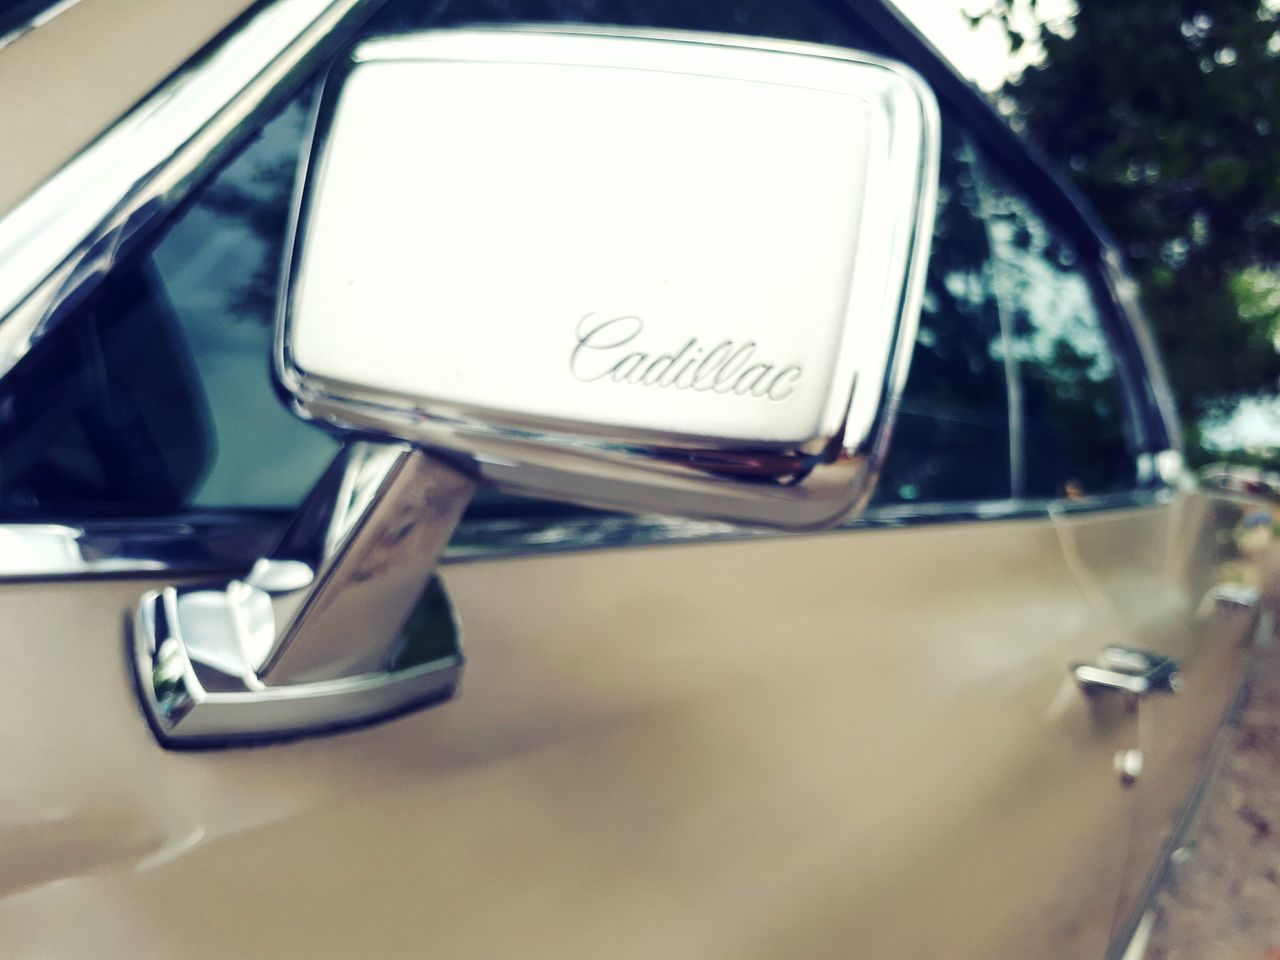 Cadillac Rockabilly Fast N Loud V8 Power Walldorf